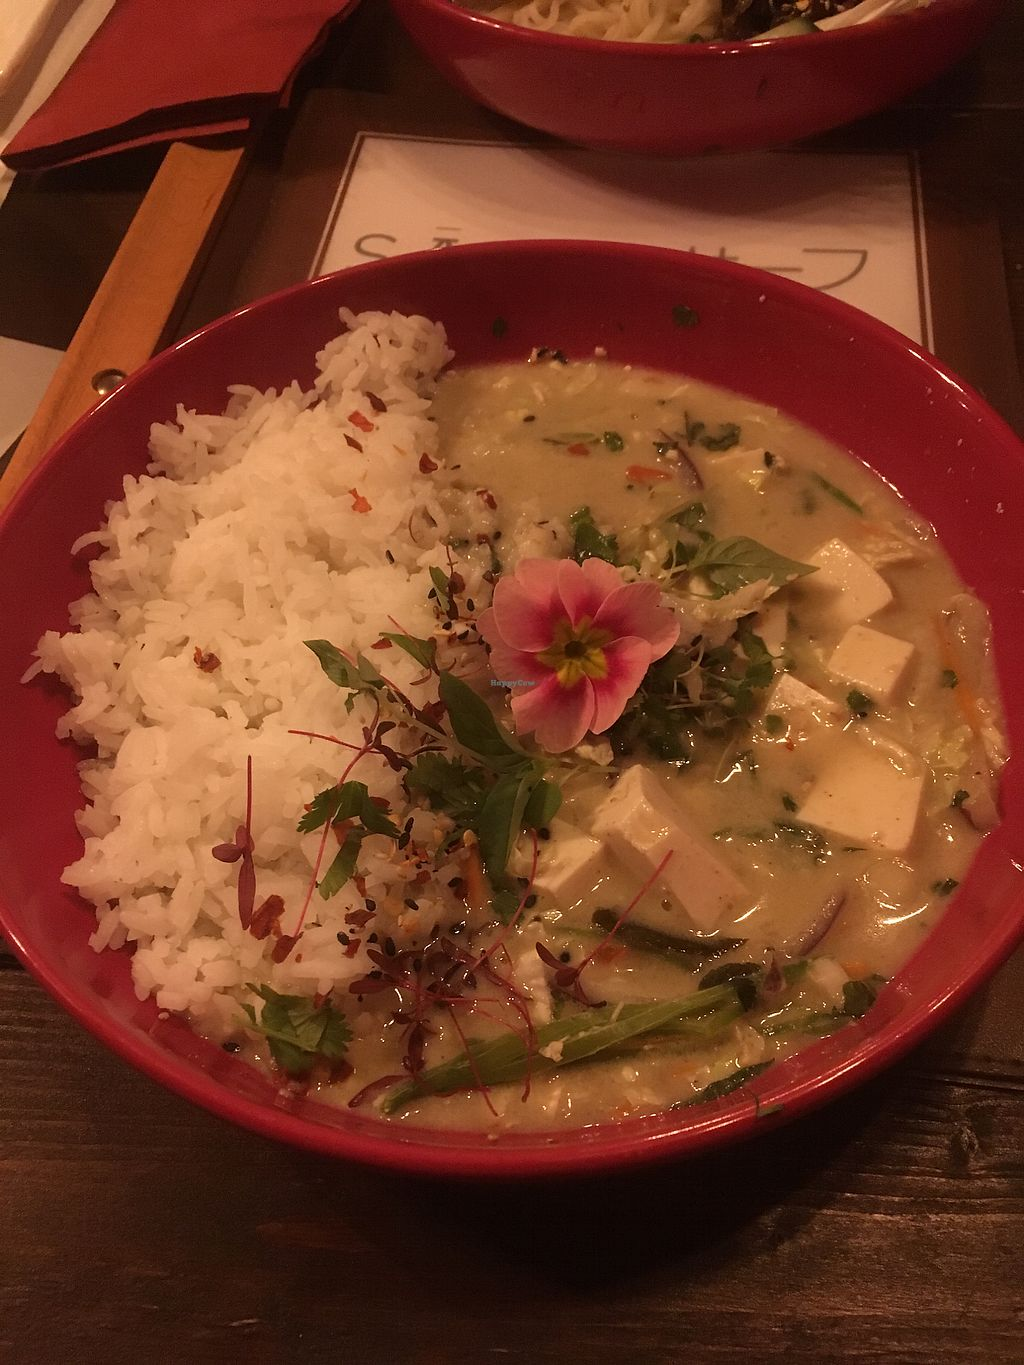 """Photo of Safu  by <a href=""""/members/profile/Spud_Taylor"""">Spud_Taylor</a> <br/>Vegan Thai Green Curry <br/> February 14, 2018  - <a href='/contact/abuse/image/96010/359479'>Report</a>"""